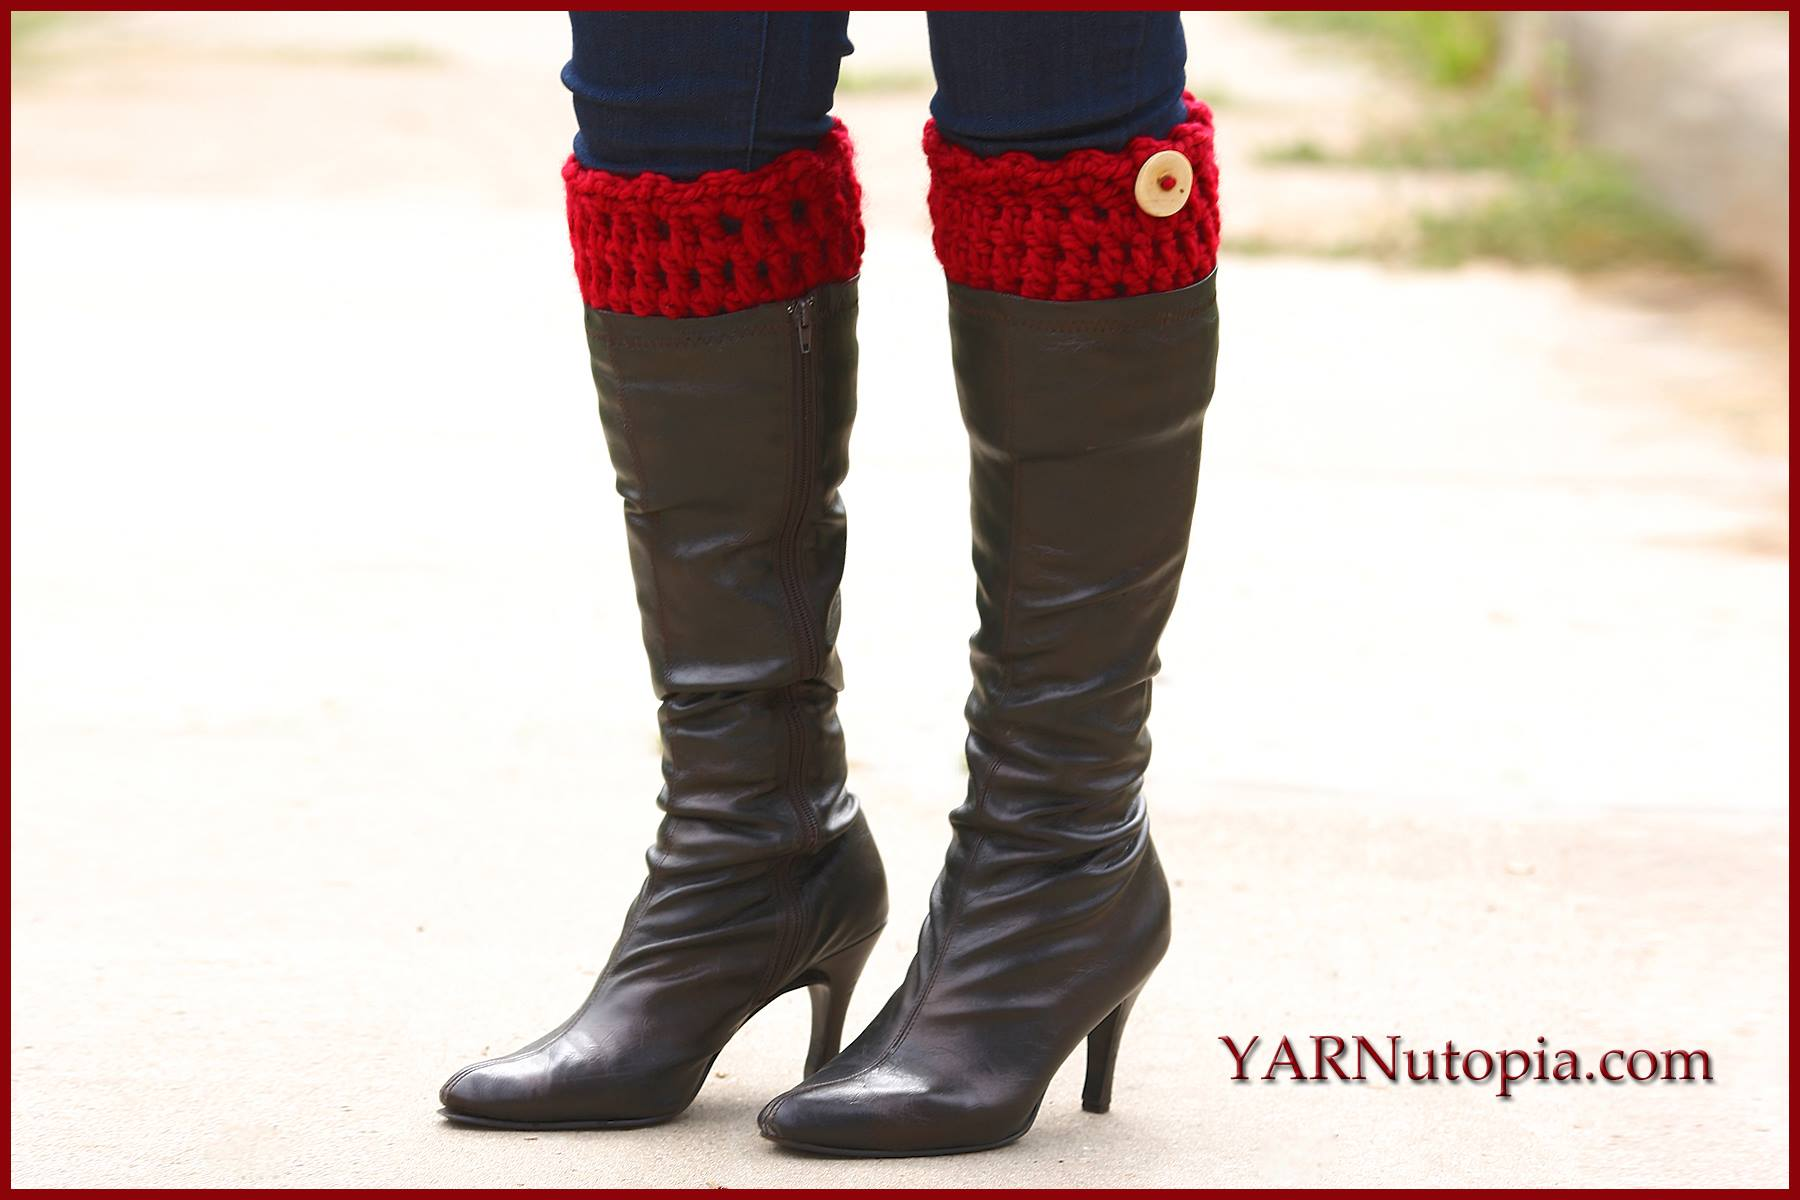 Crochet tutorial simple chunky boot cuffs yarnutopia by nadia fuad simple chunky boot cuffs bankloansurffo Images